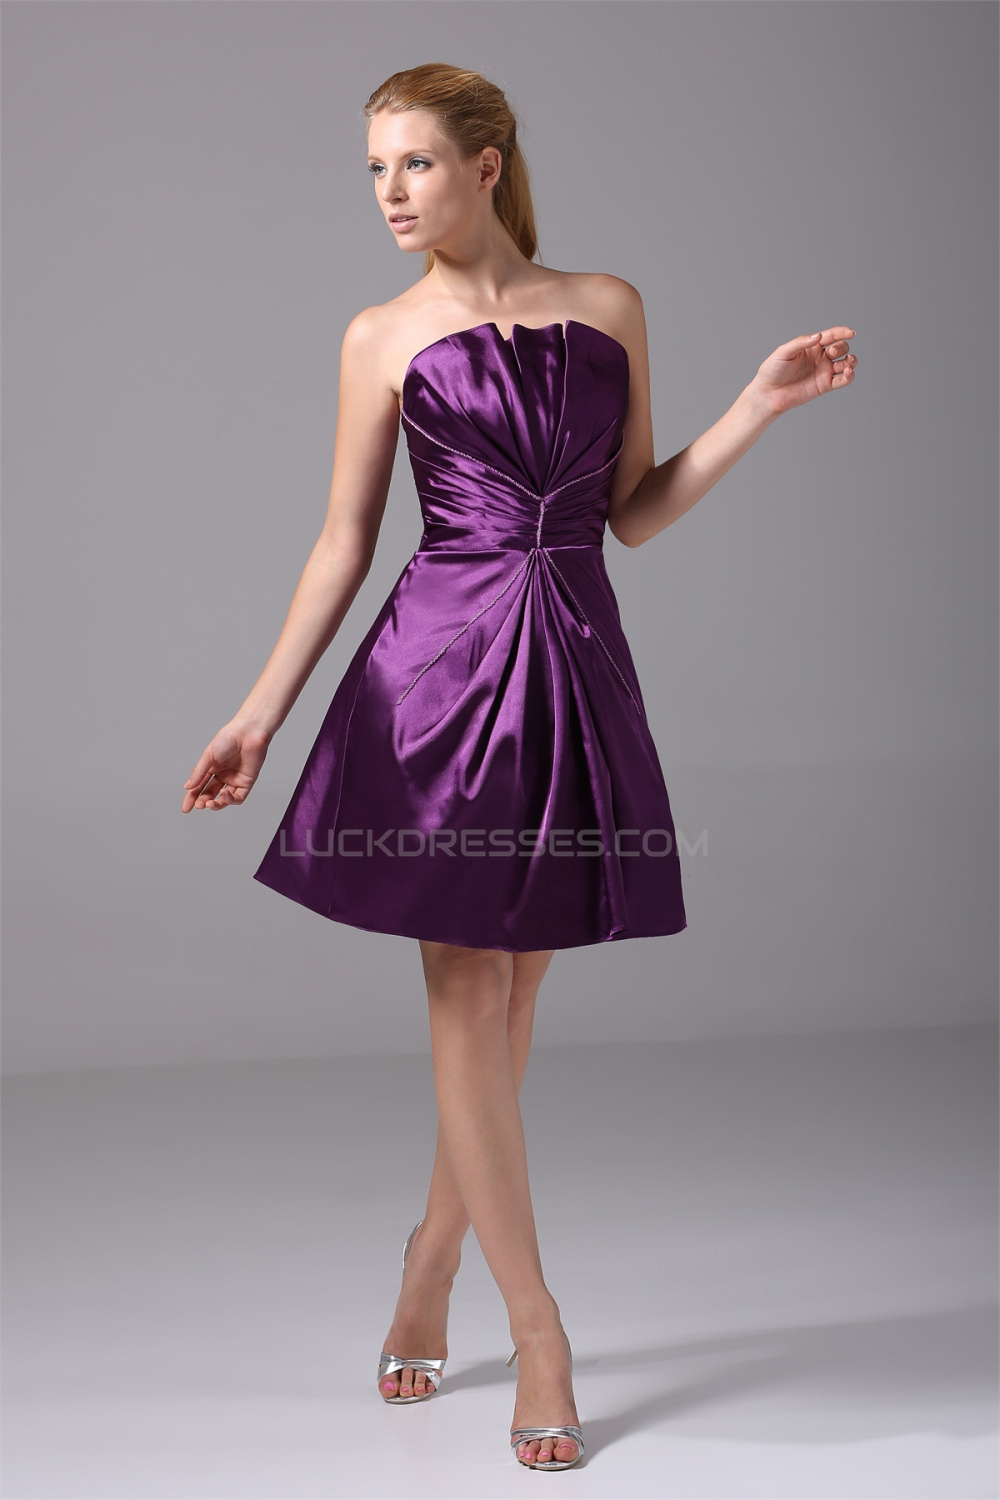 3b5072a8d8d Sleeveless Silk like Satin A-Line Short Mini Purple Prom Formal Evening  Bridesmaid Dresses 02021230